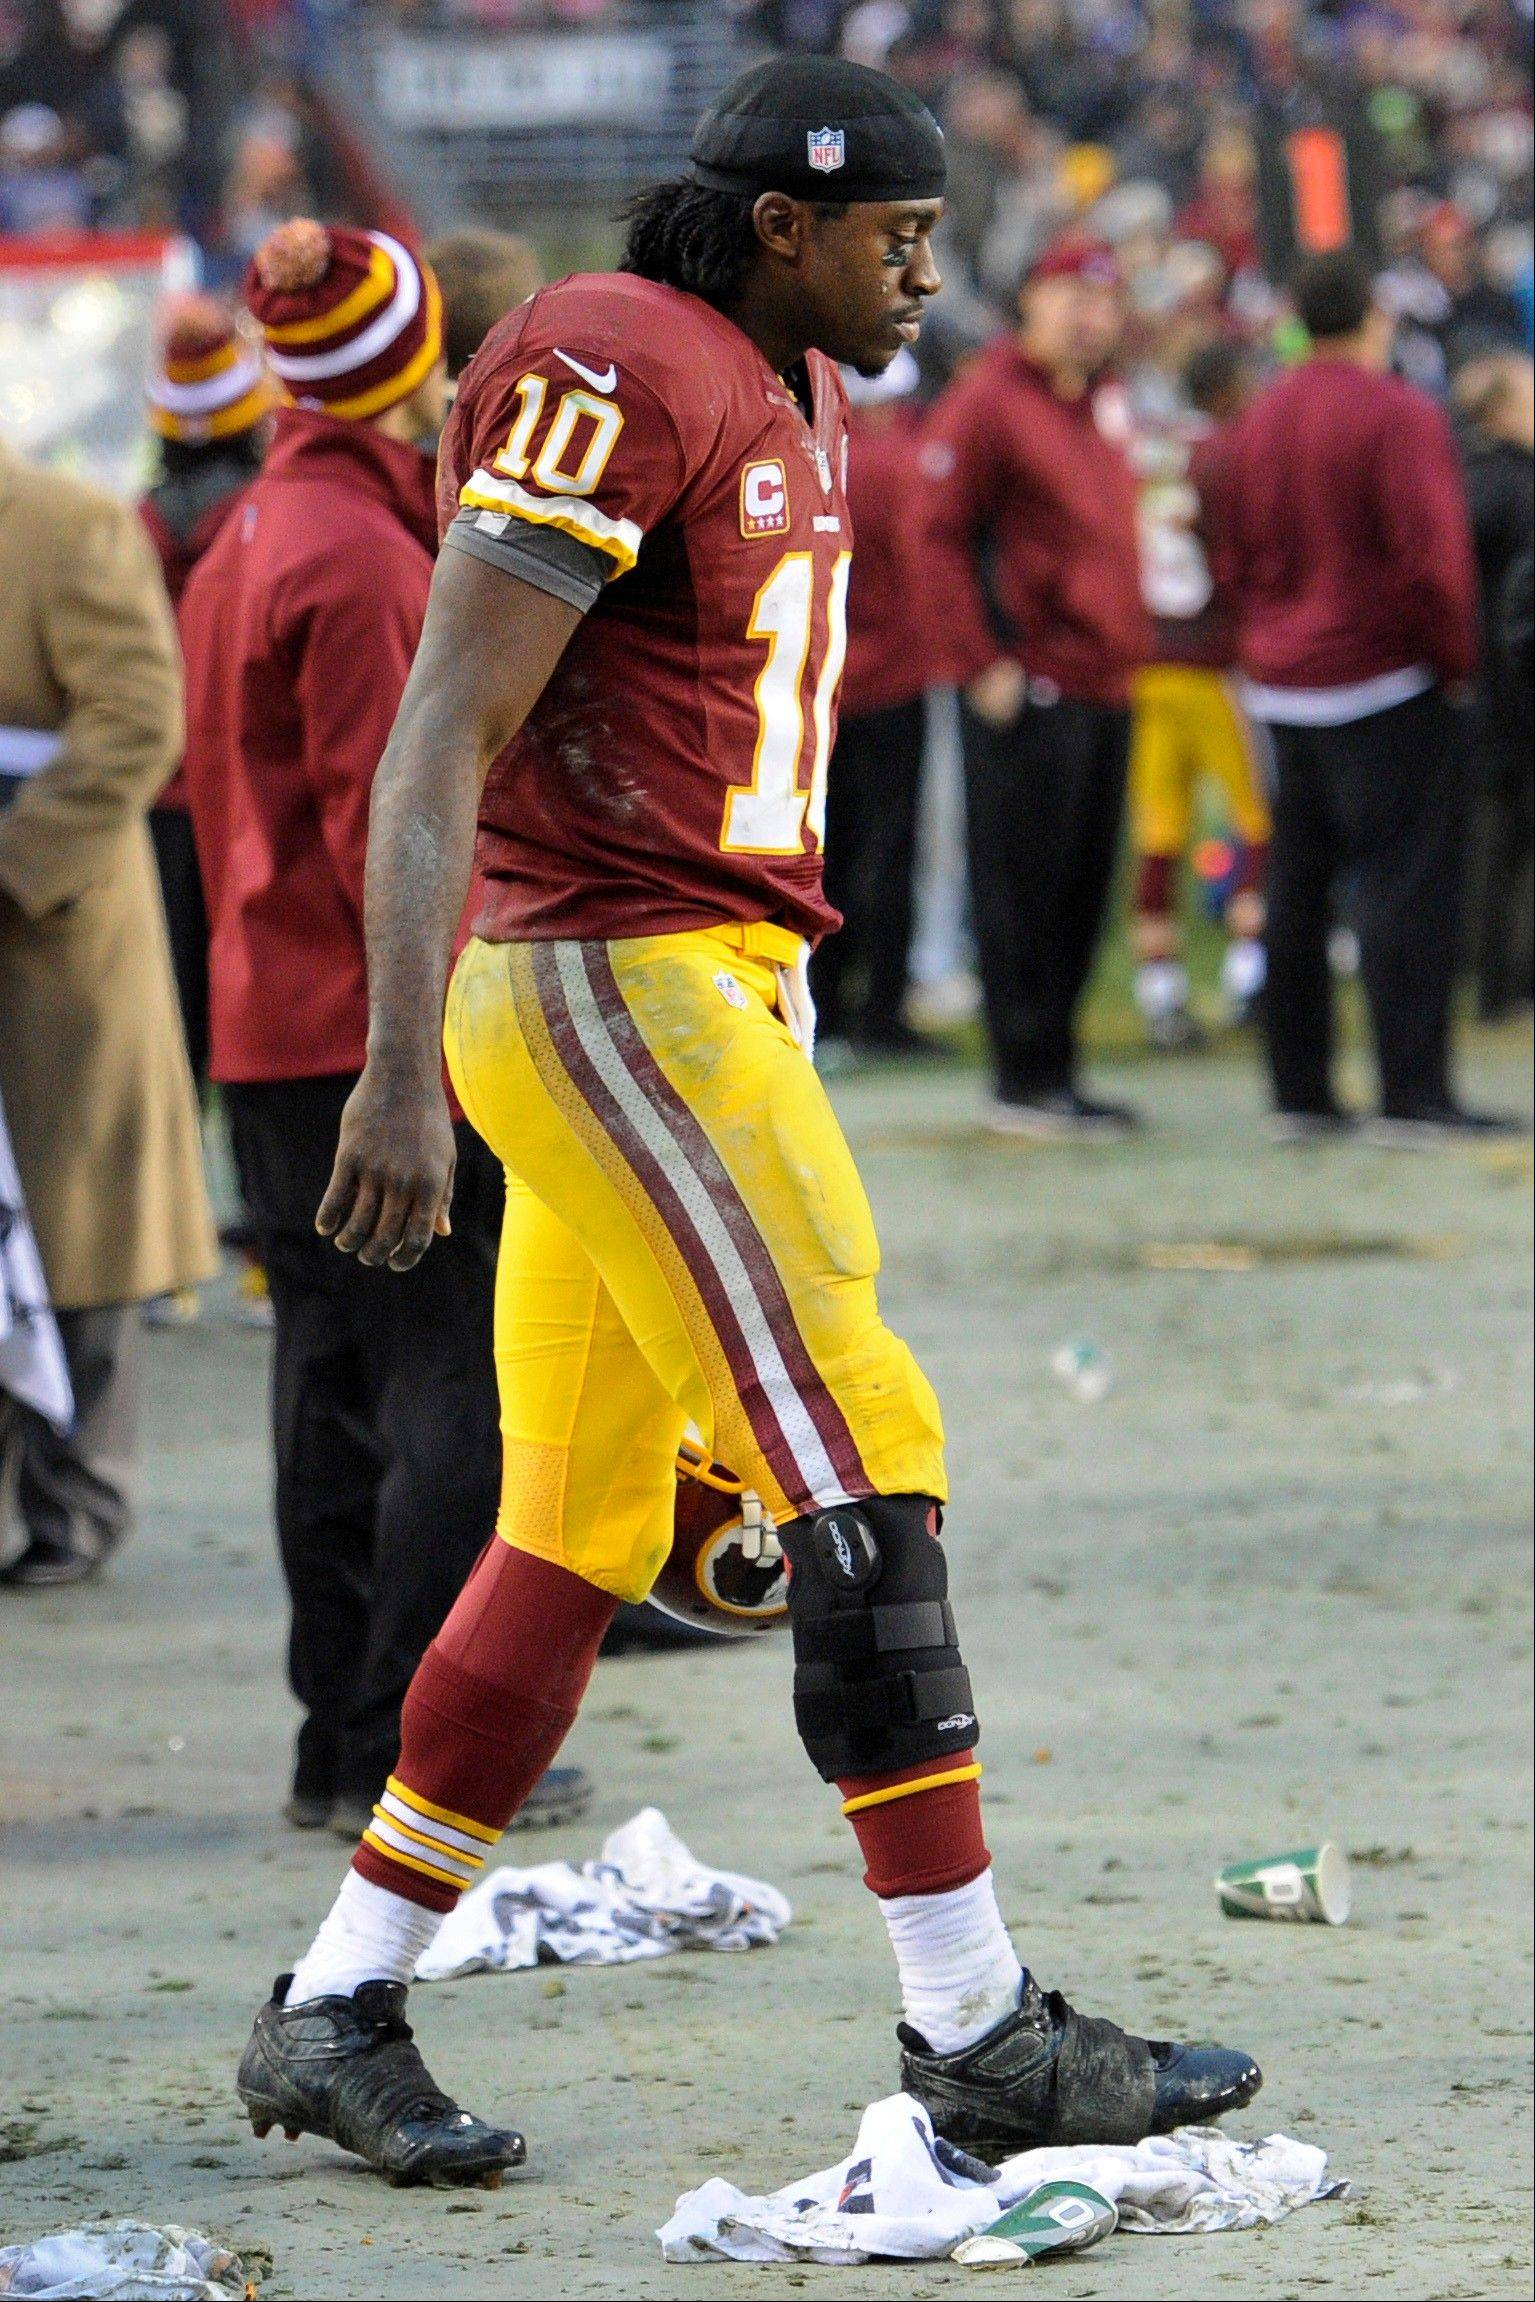 Washington Redskins quarterback Robert Griffin III walks through the bench area with a brace on his knee during overtime of Sunday's game against the Ravens at Baltimore.